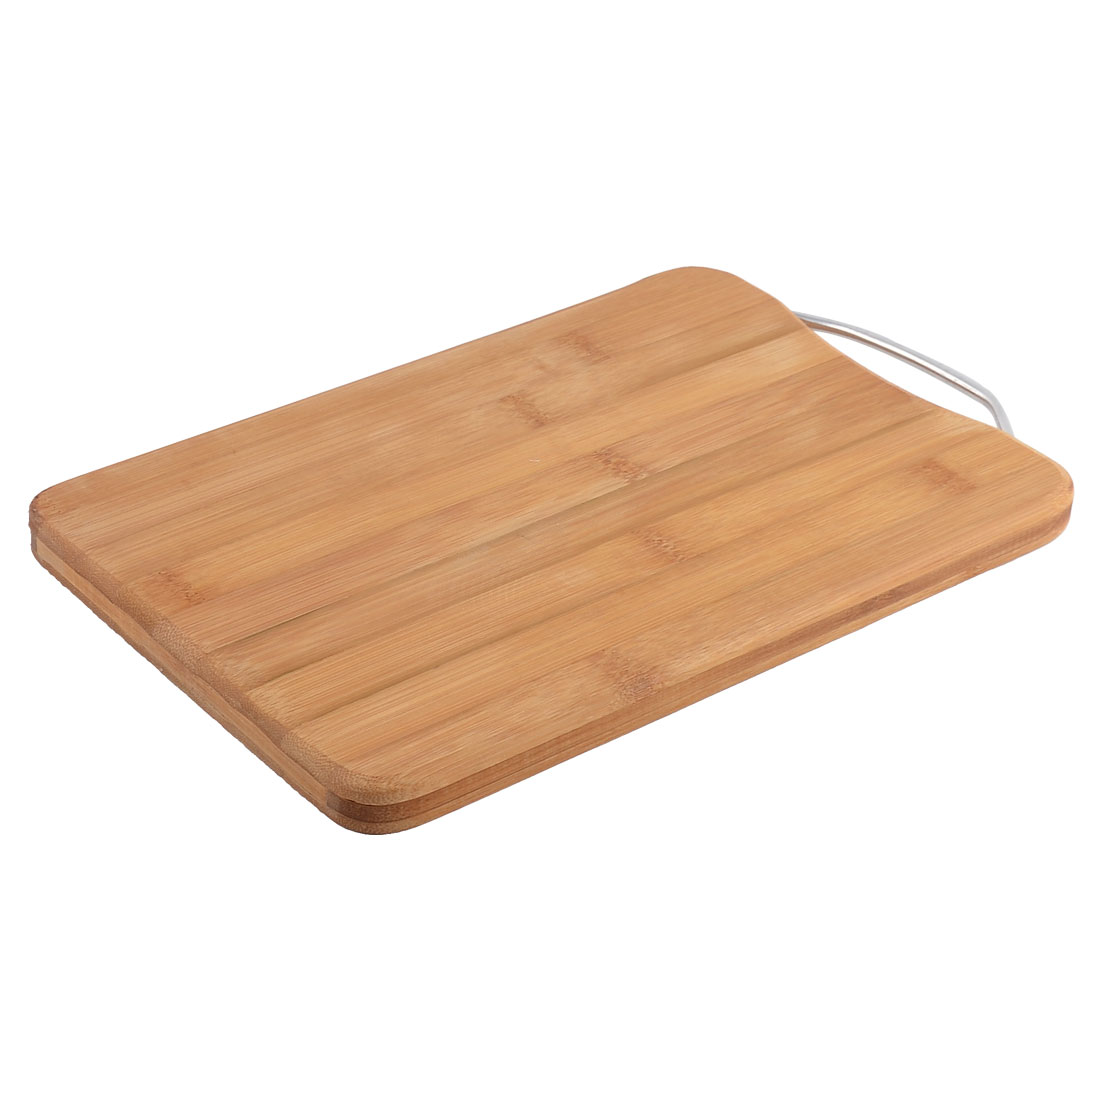 kitchen cutting boards lowes cabinet knobs restaurant bamboo rectangle shaped meat fruit chopping board